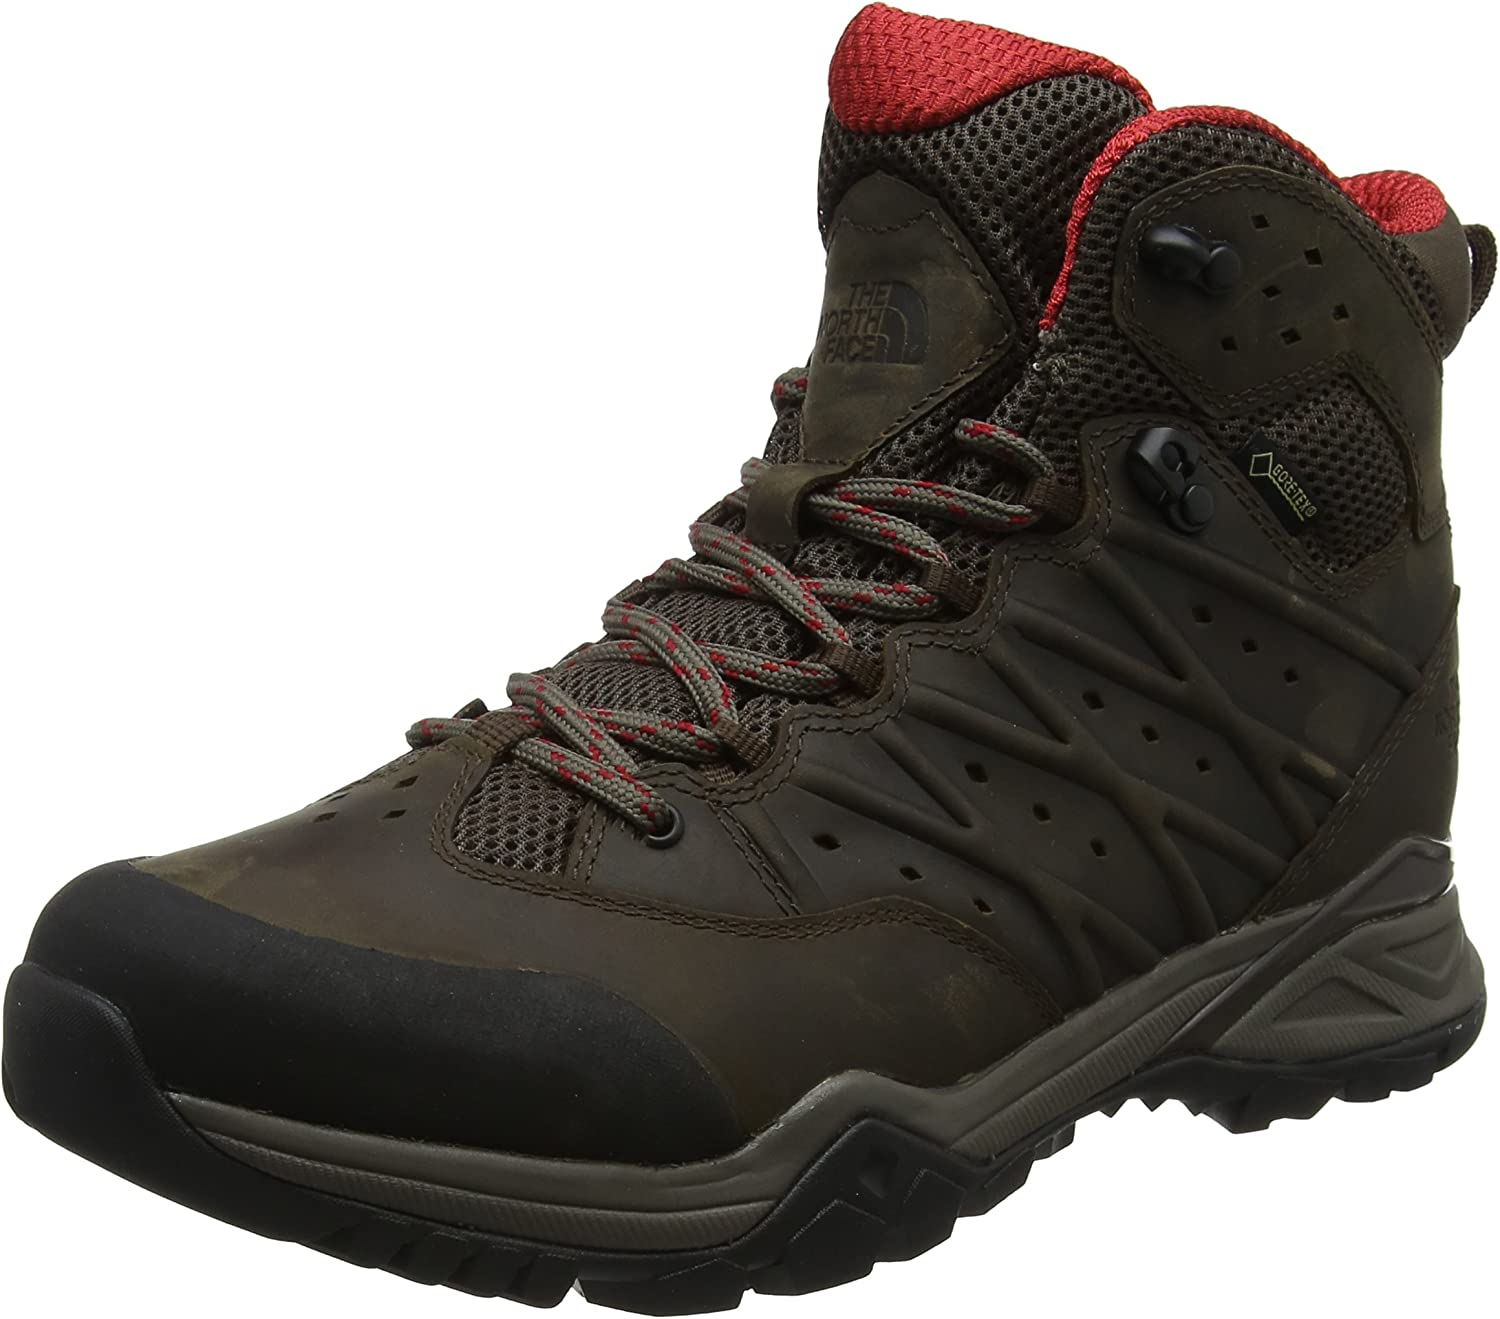 North Face Men's High Rise Hiking Boots